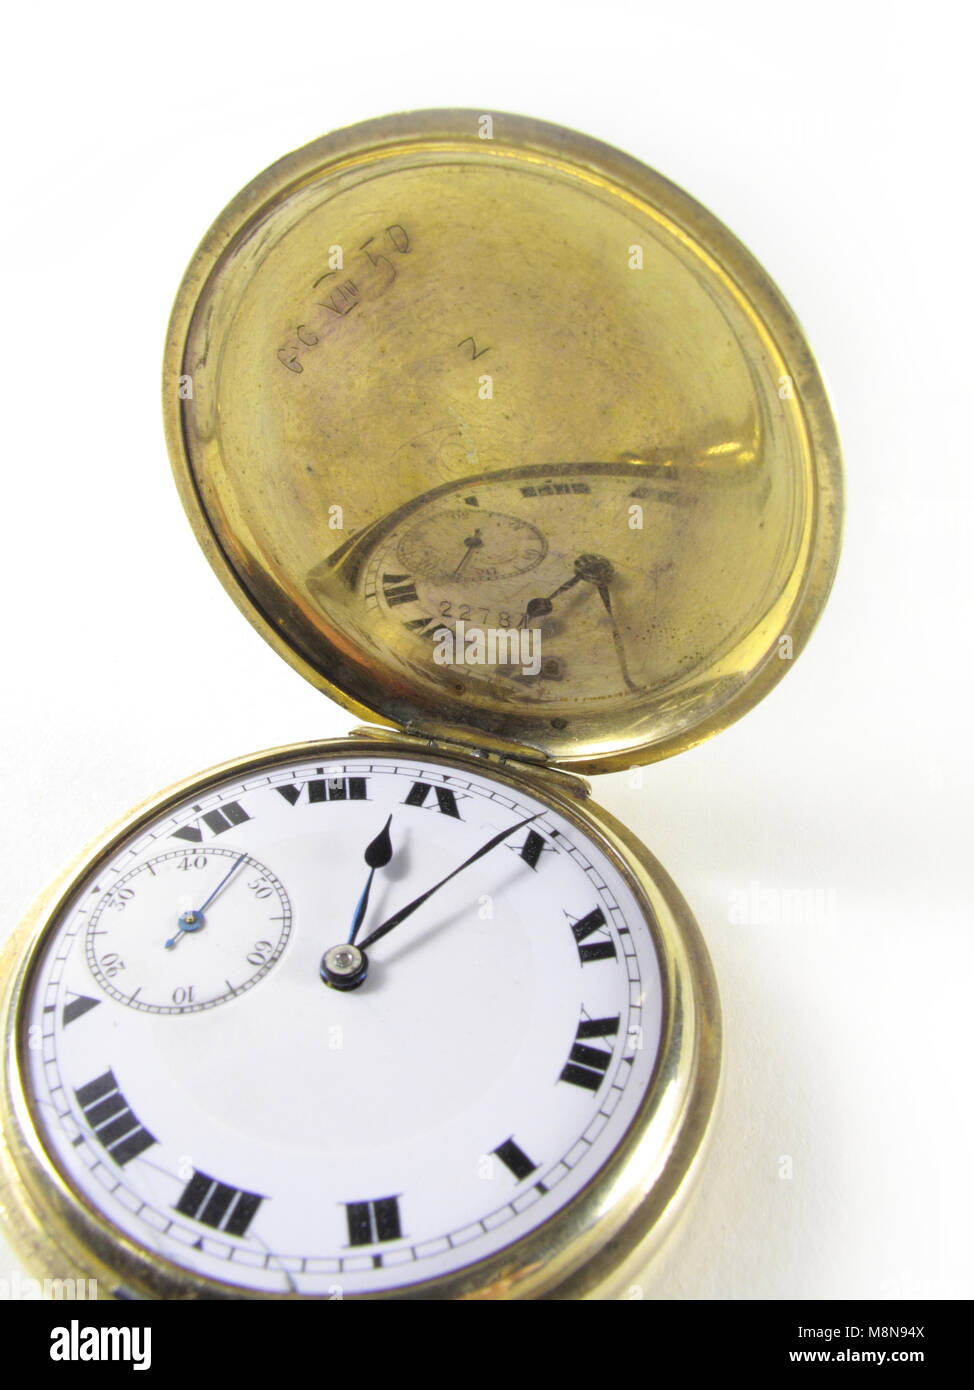 Watch face of an antique gold hunter pocket watch - Stock Image